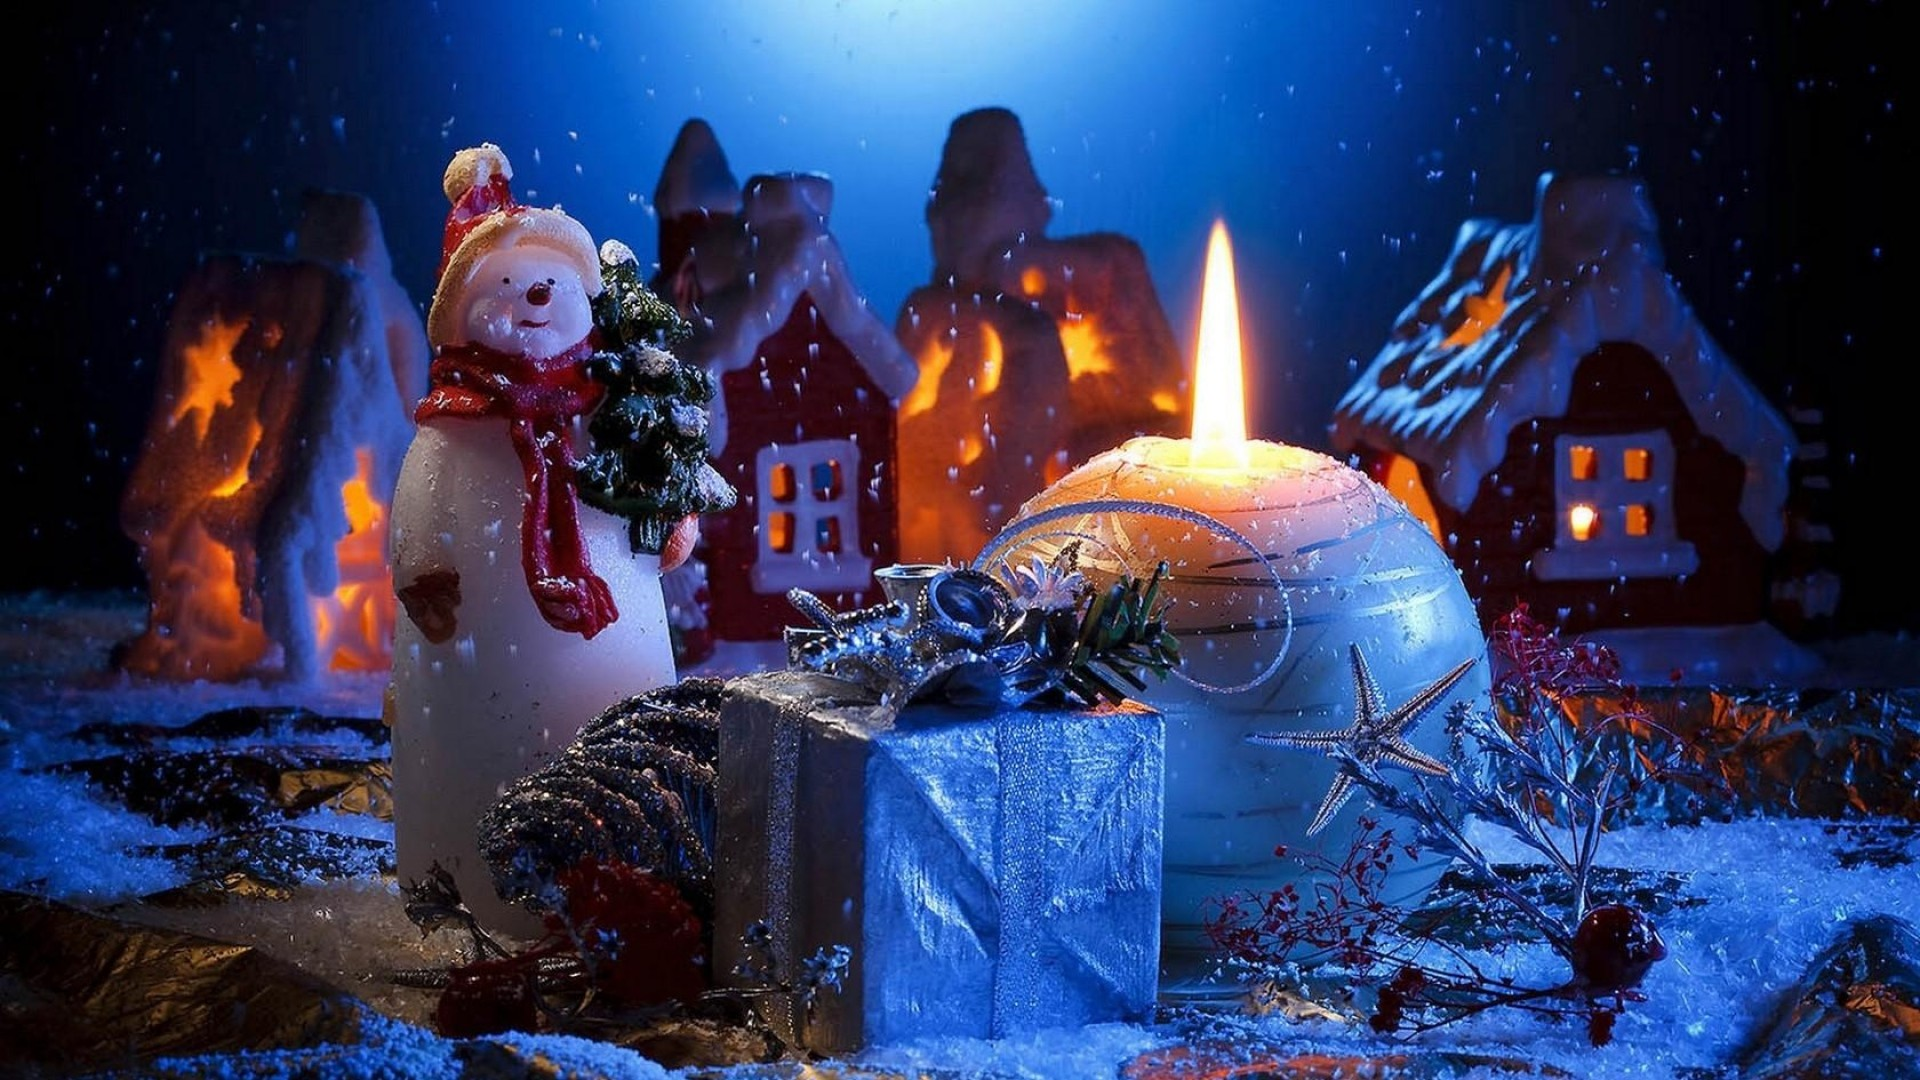 Gift, Home, Holiday, New year, Christmas Full HD 1080p .